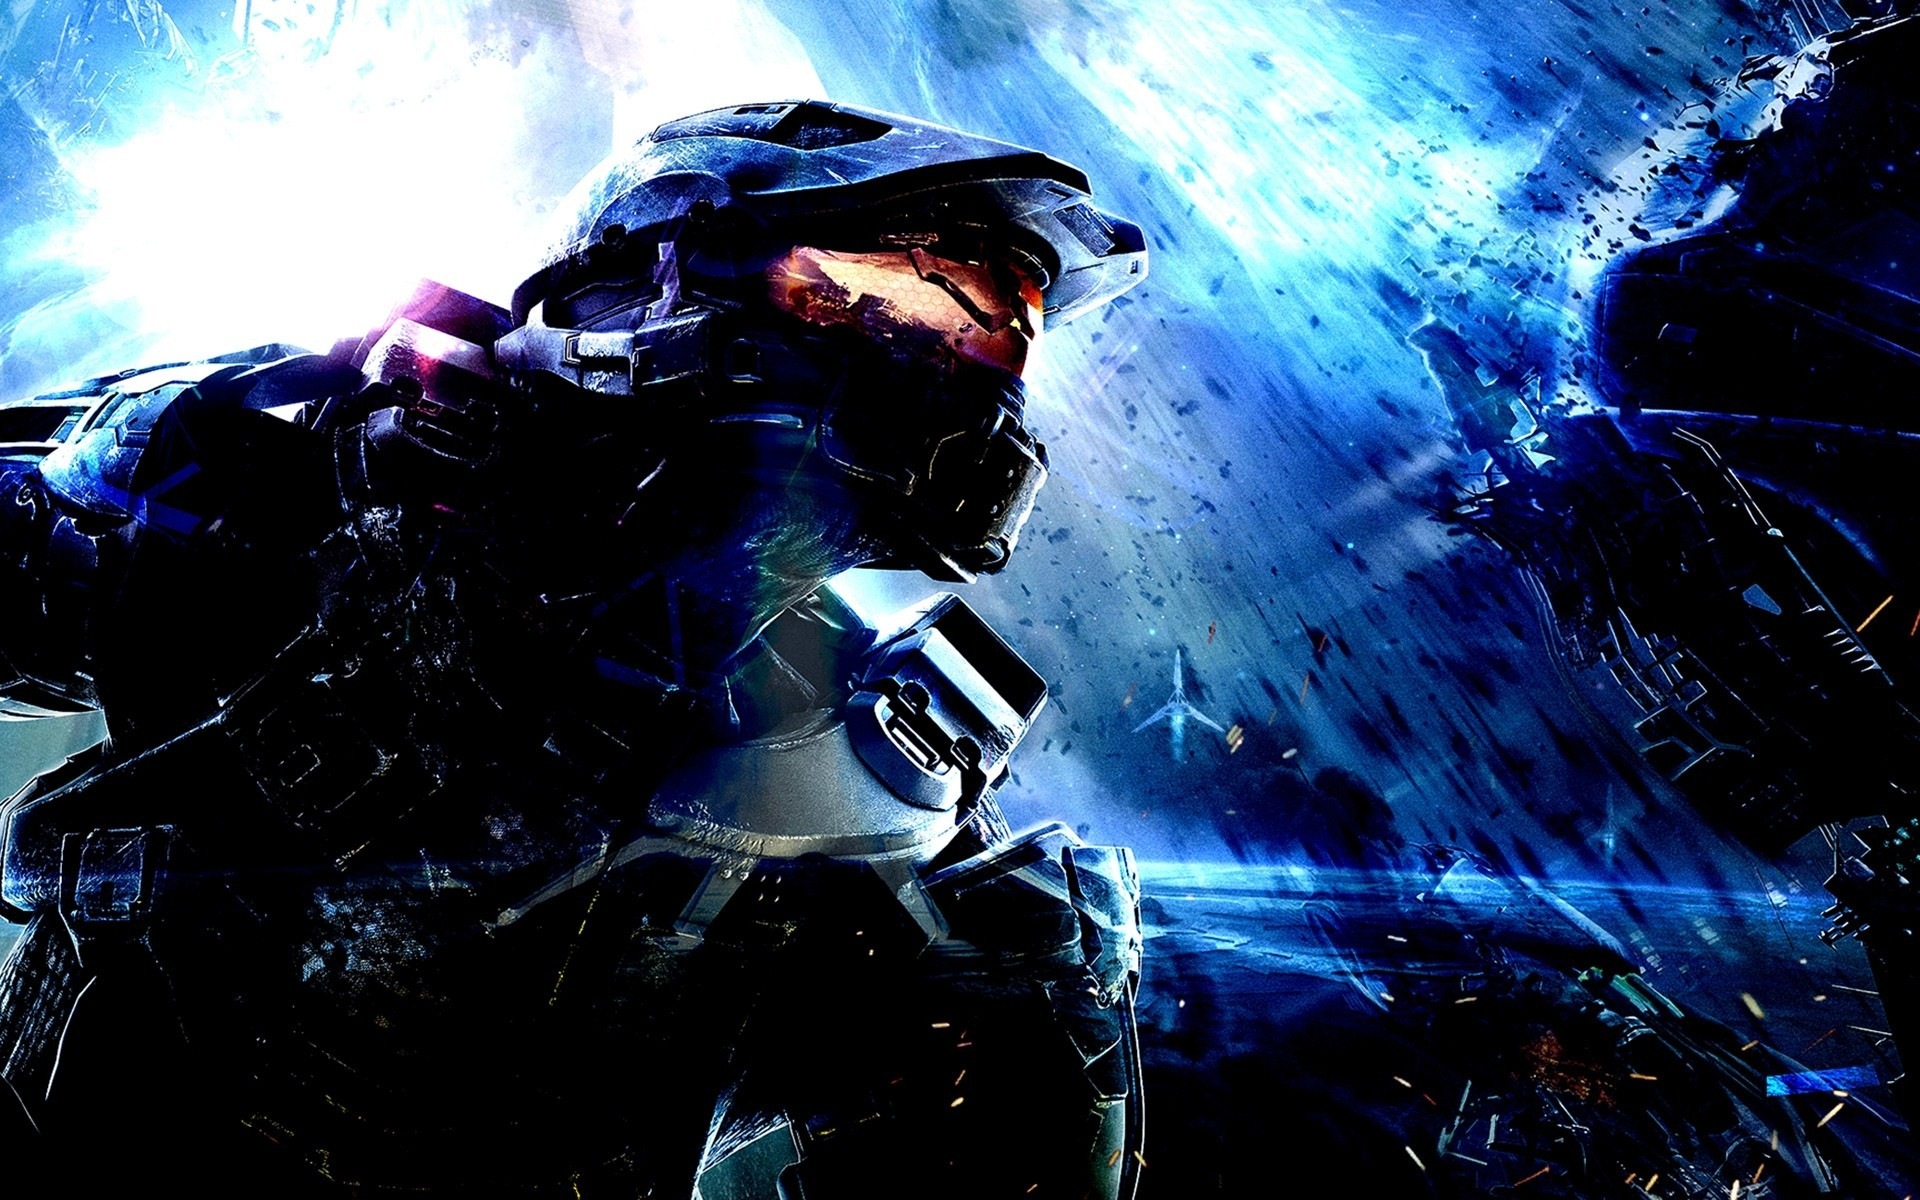 1920x1200 0 1920x1094 4k game wallpapers Desktop Wallpapers  5 Game Wallpaper  012